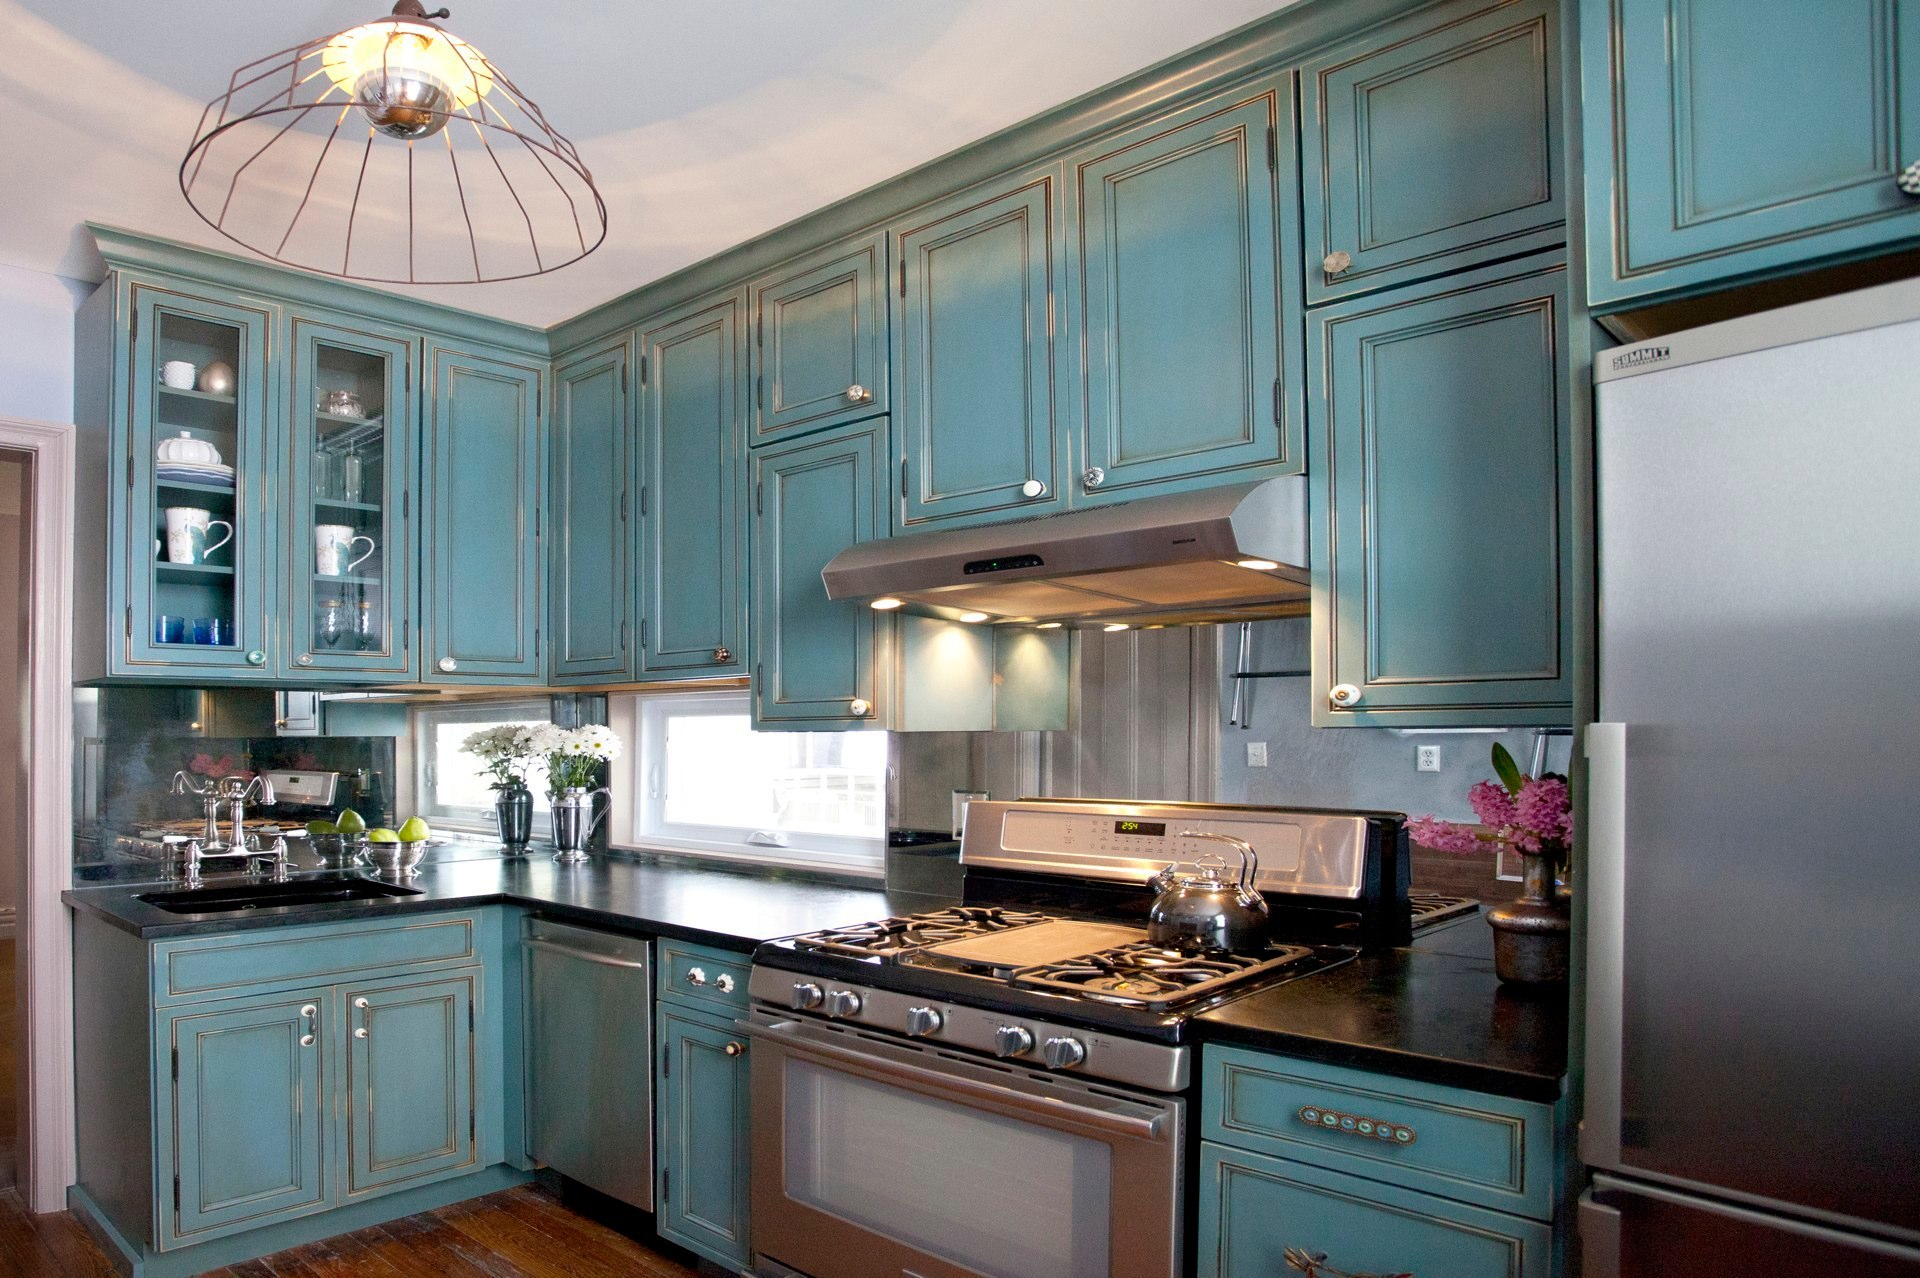 Kitchen Cabinets From Home Depot | Thomasville Cabinets | Thomasville Kitchen Cabinets